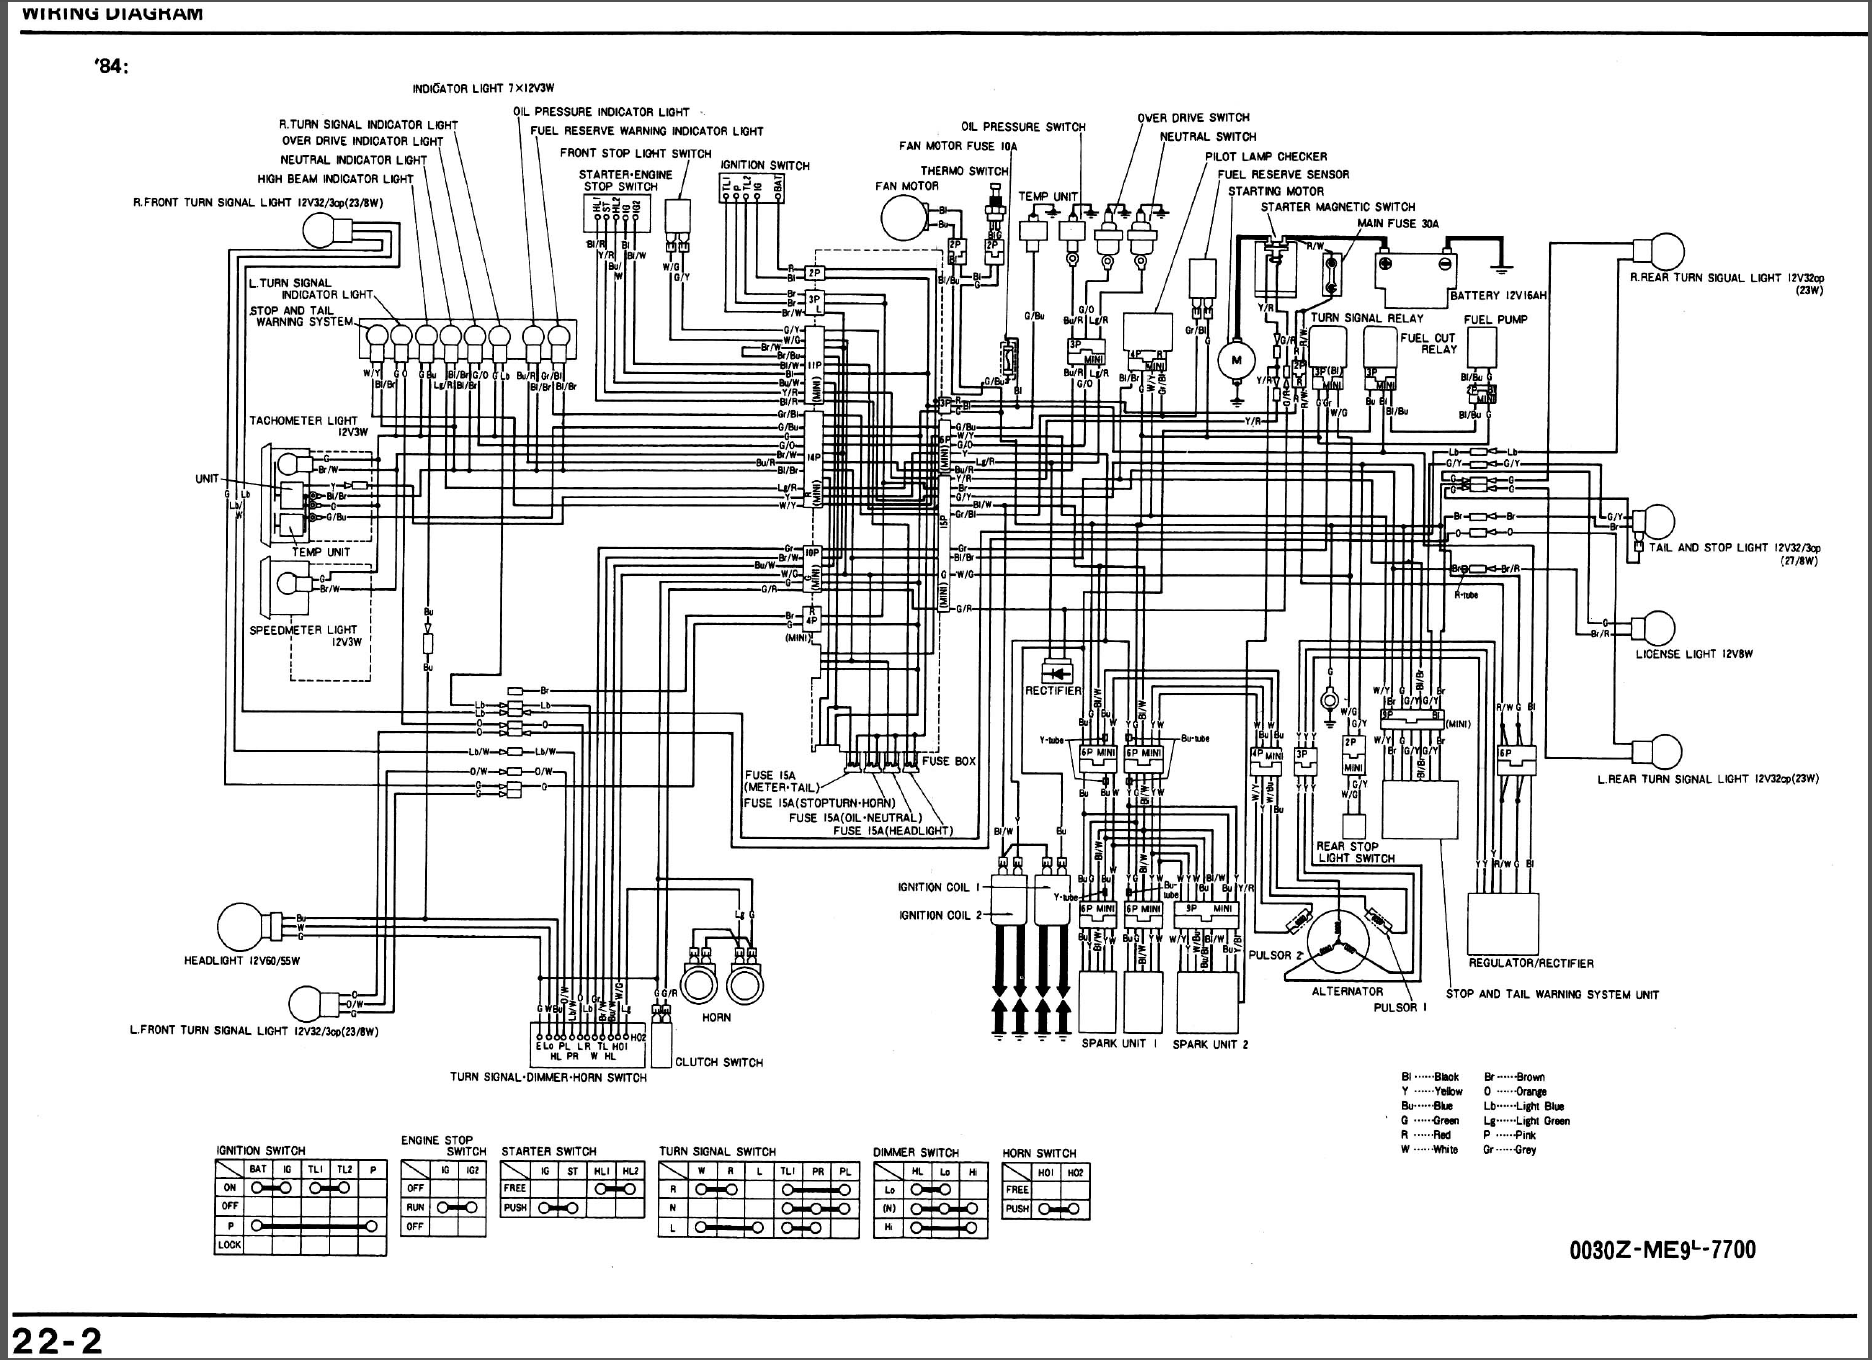 9265d1409799690 1984 honda shadow 700 wireing diagram b wiring diagrams \u2022 cancersymptoms co Honda Shadow 750 Poster at crackthecode.co